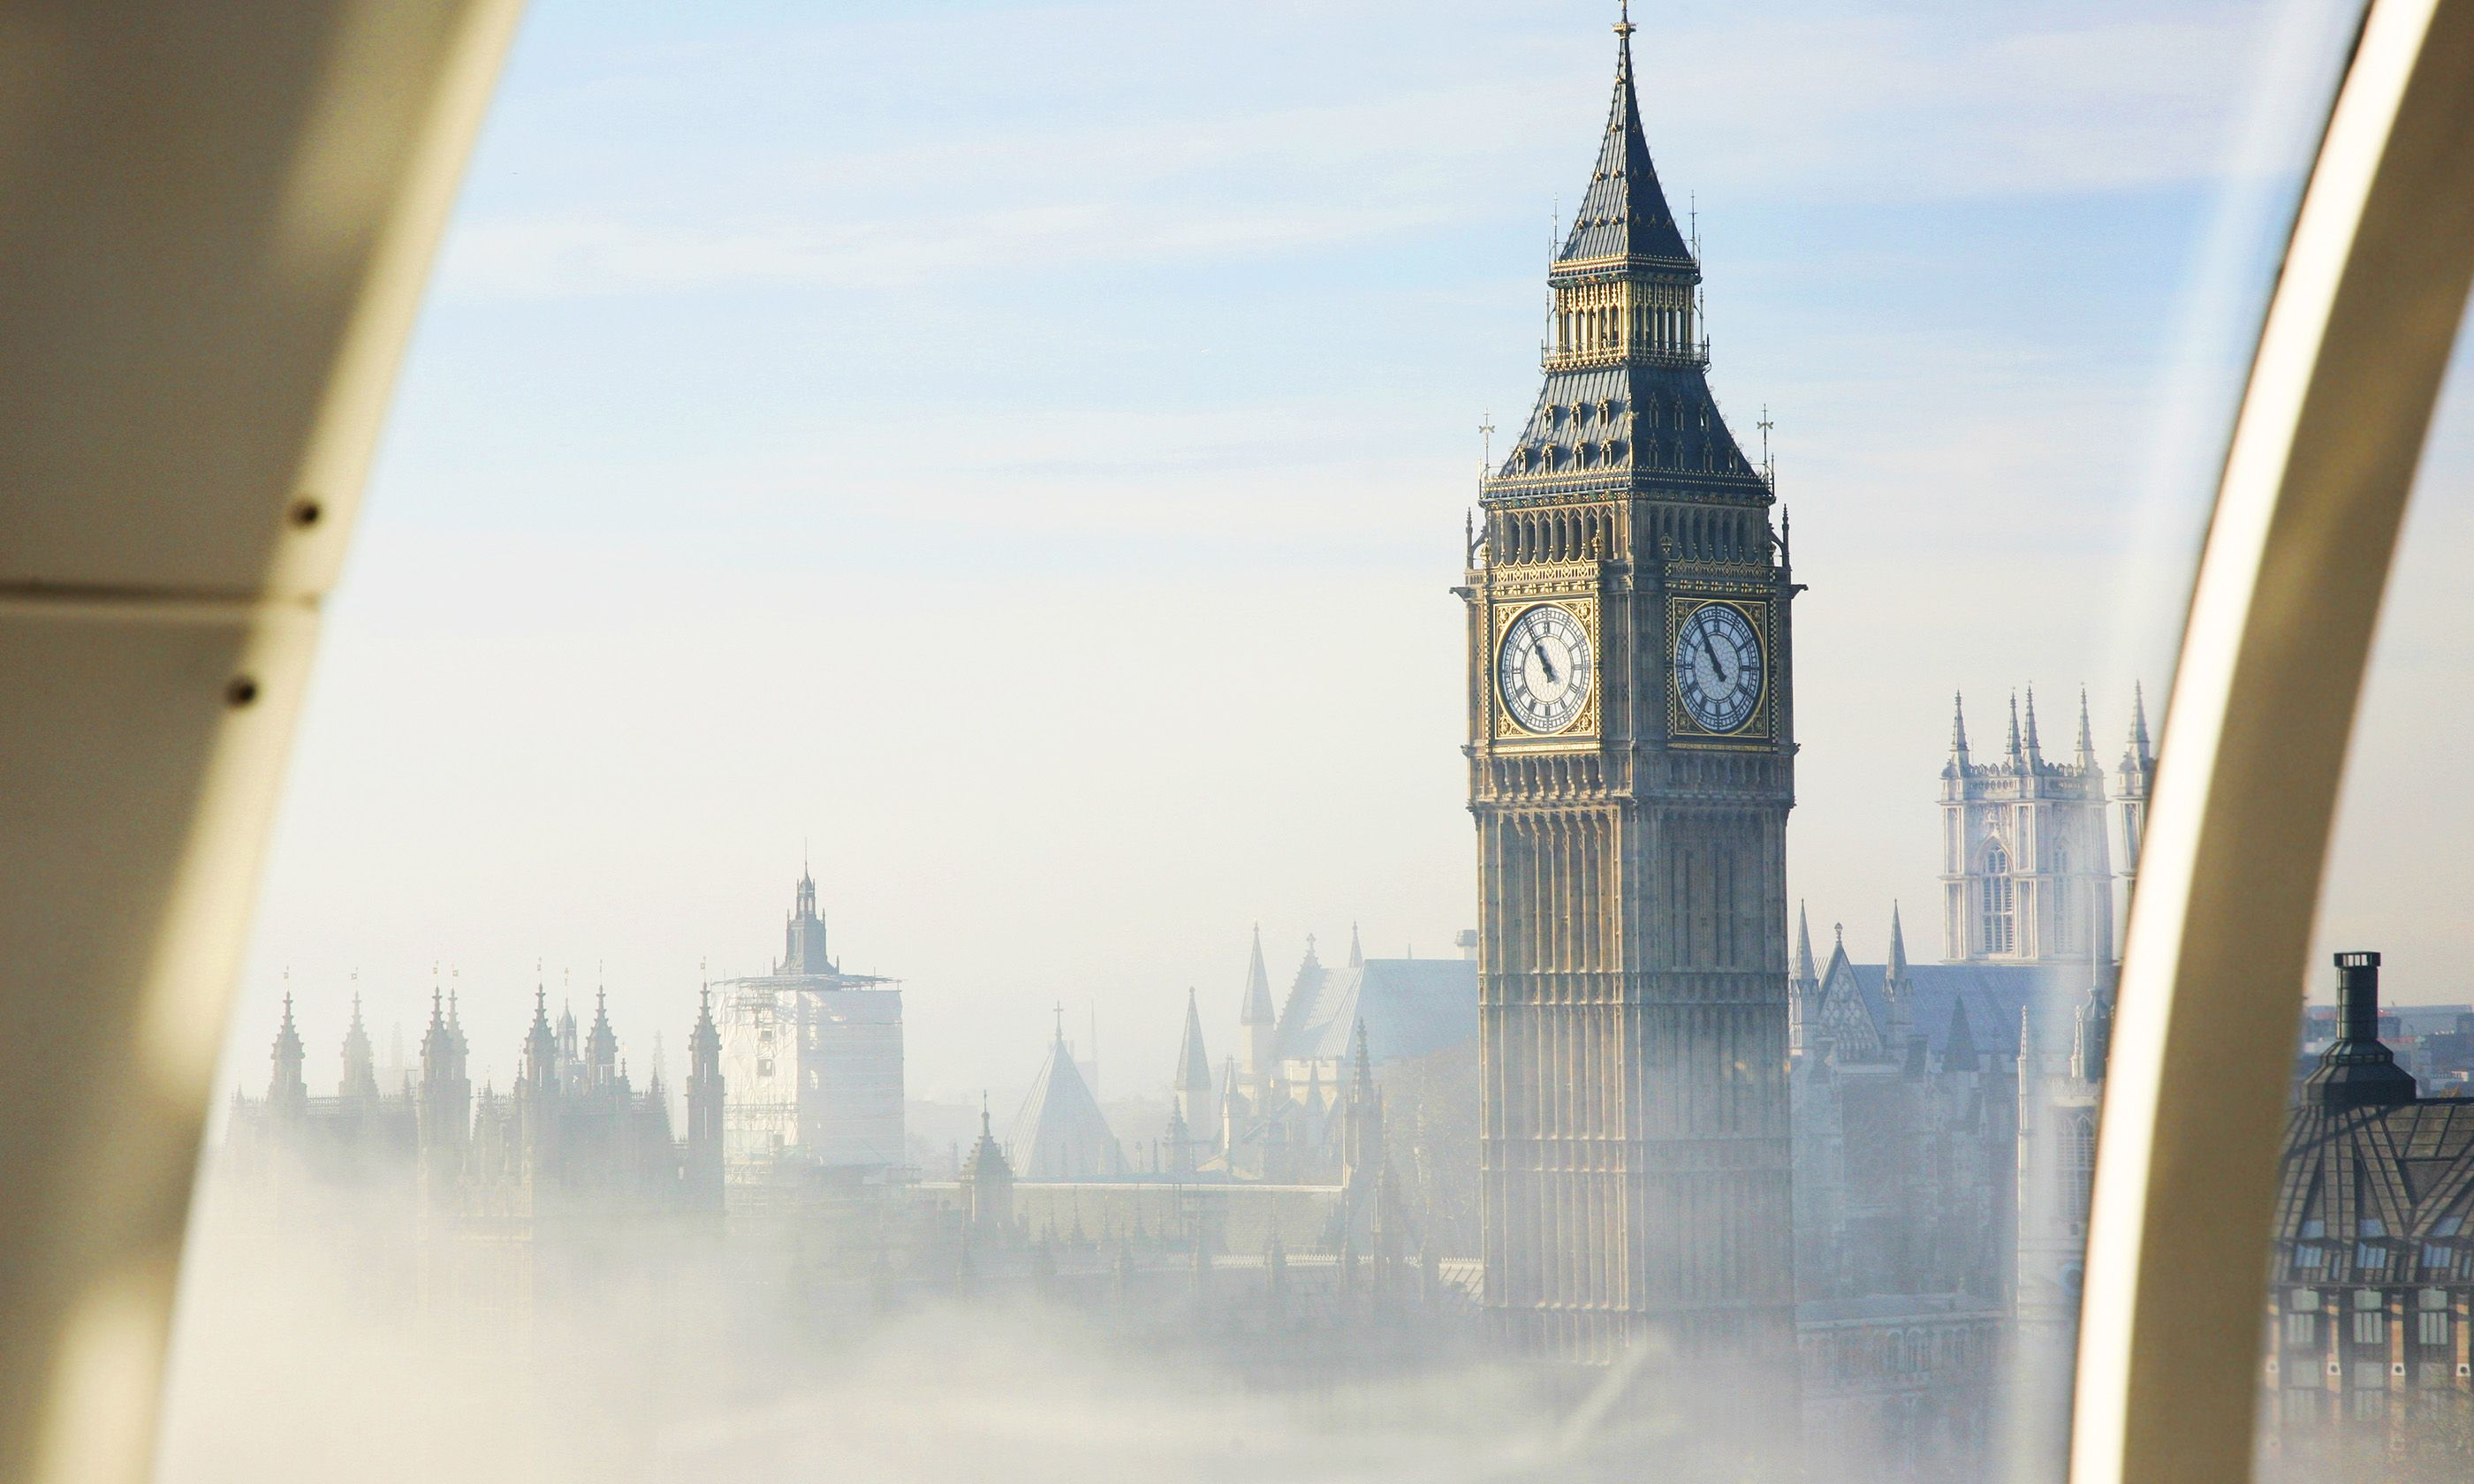 Big Ben in fog (Shutterstock.com)